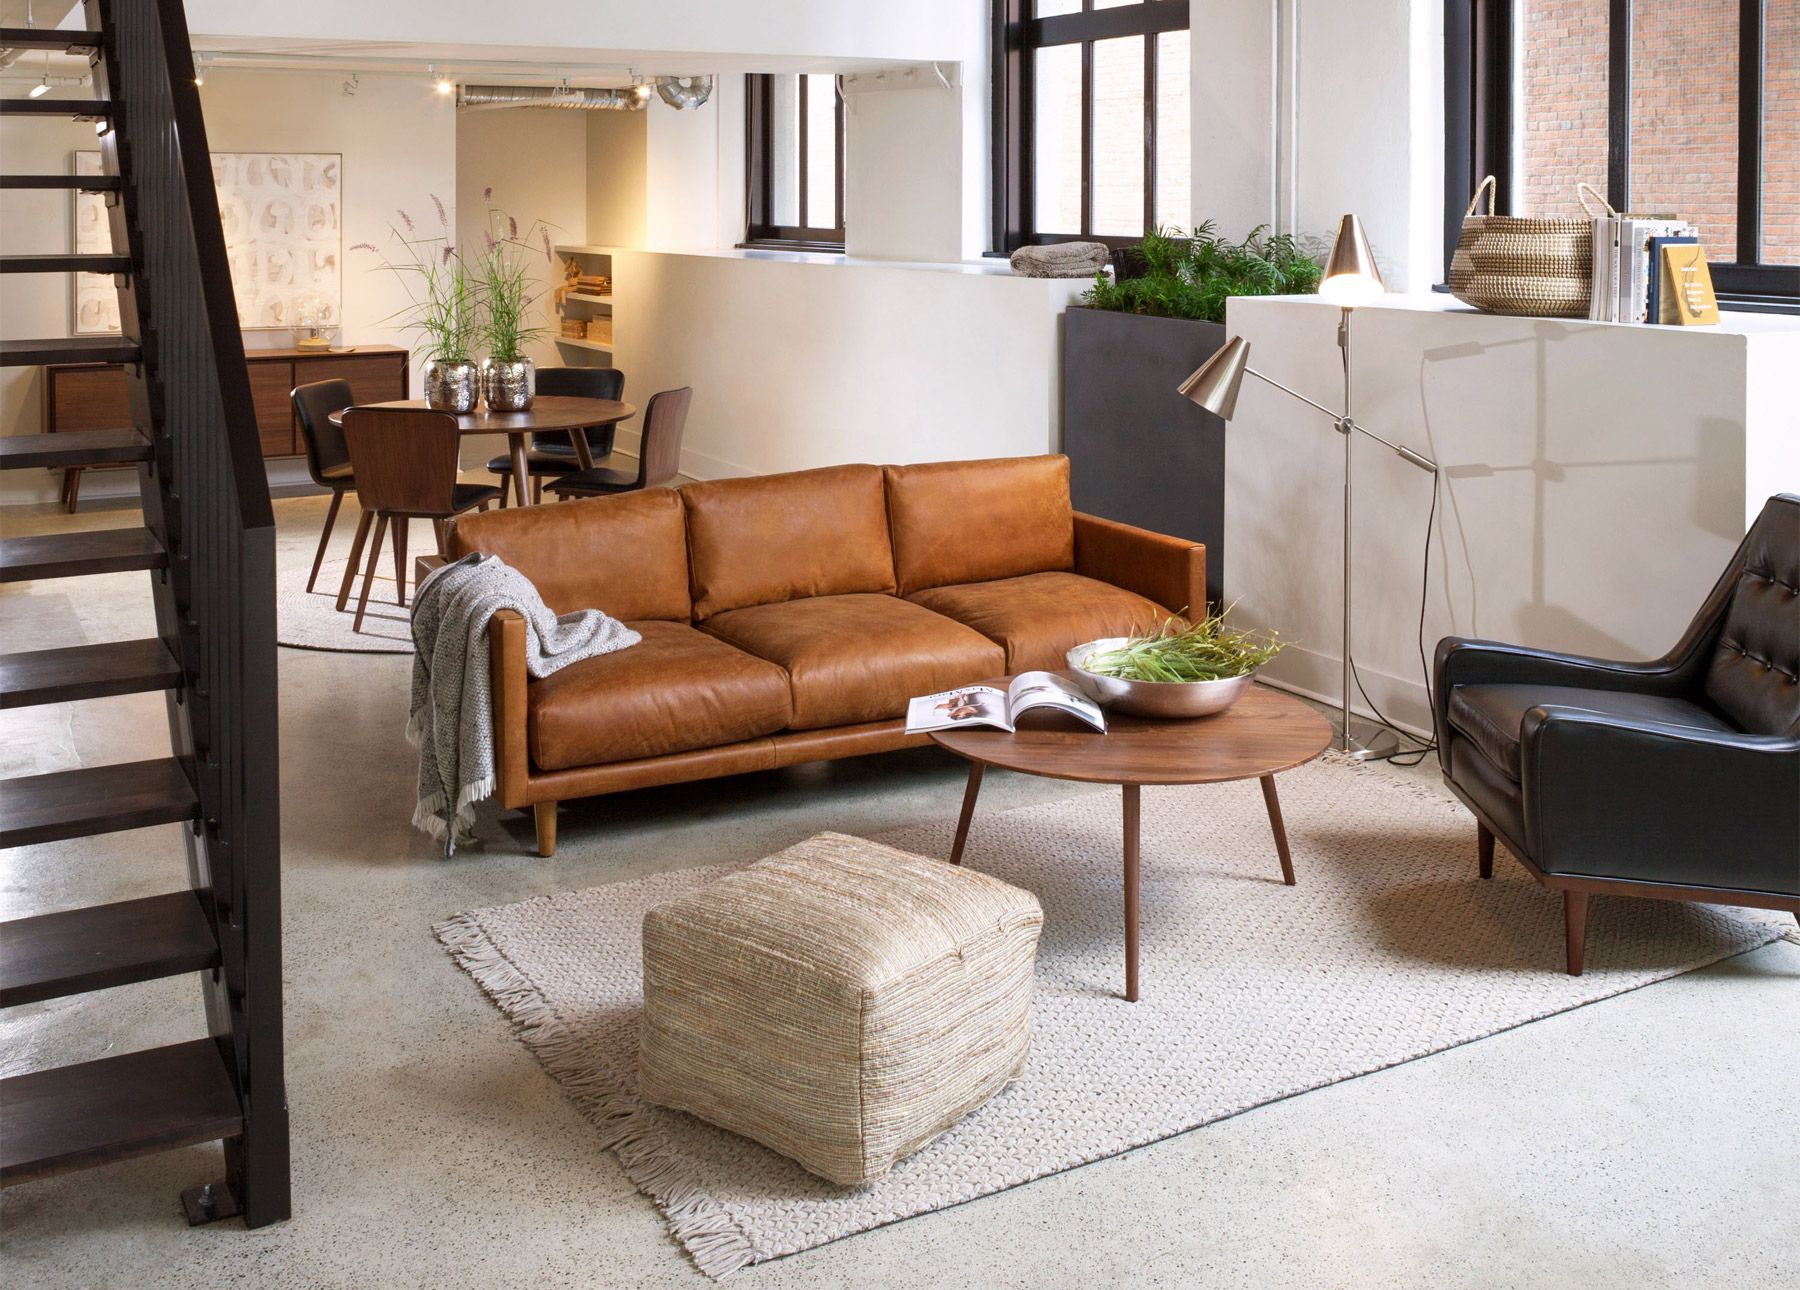 Choosing The Right Furniture For Small Spaces Furniture For